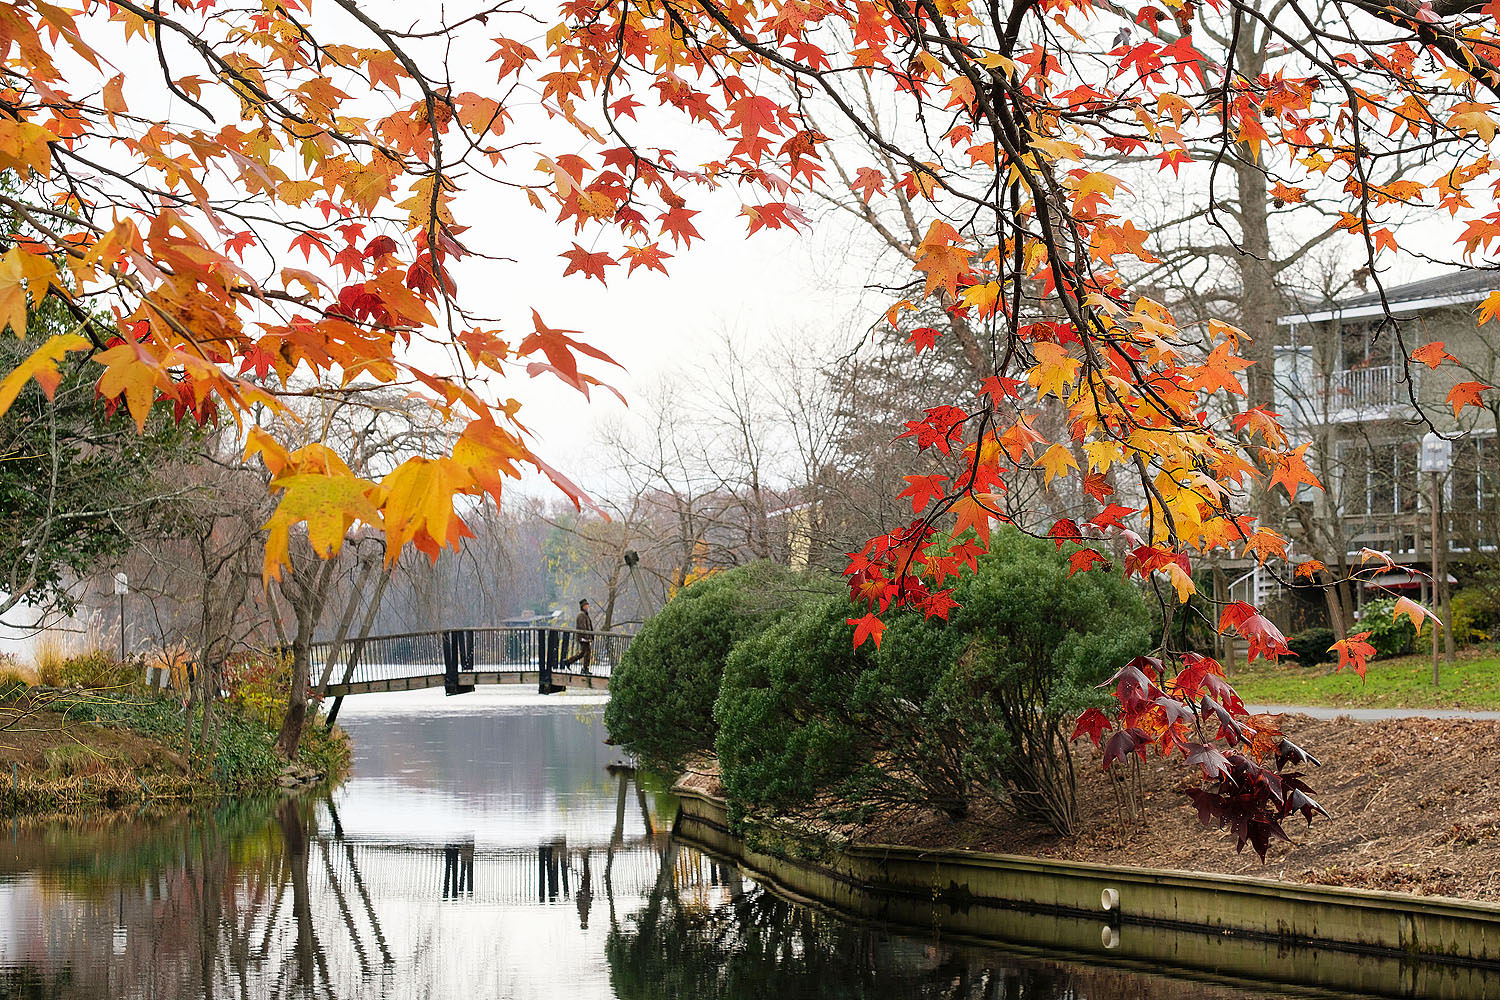 The Van Gogh Bridge at Lake Anne | Reston, Virginia